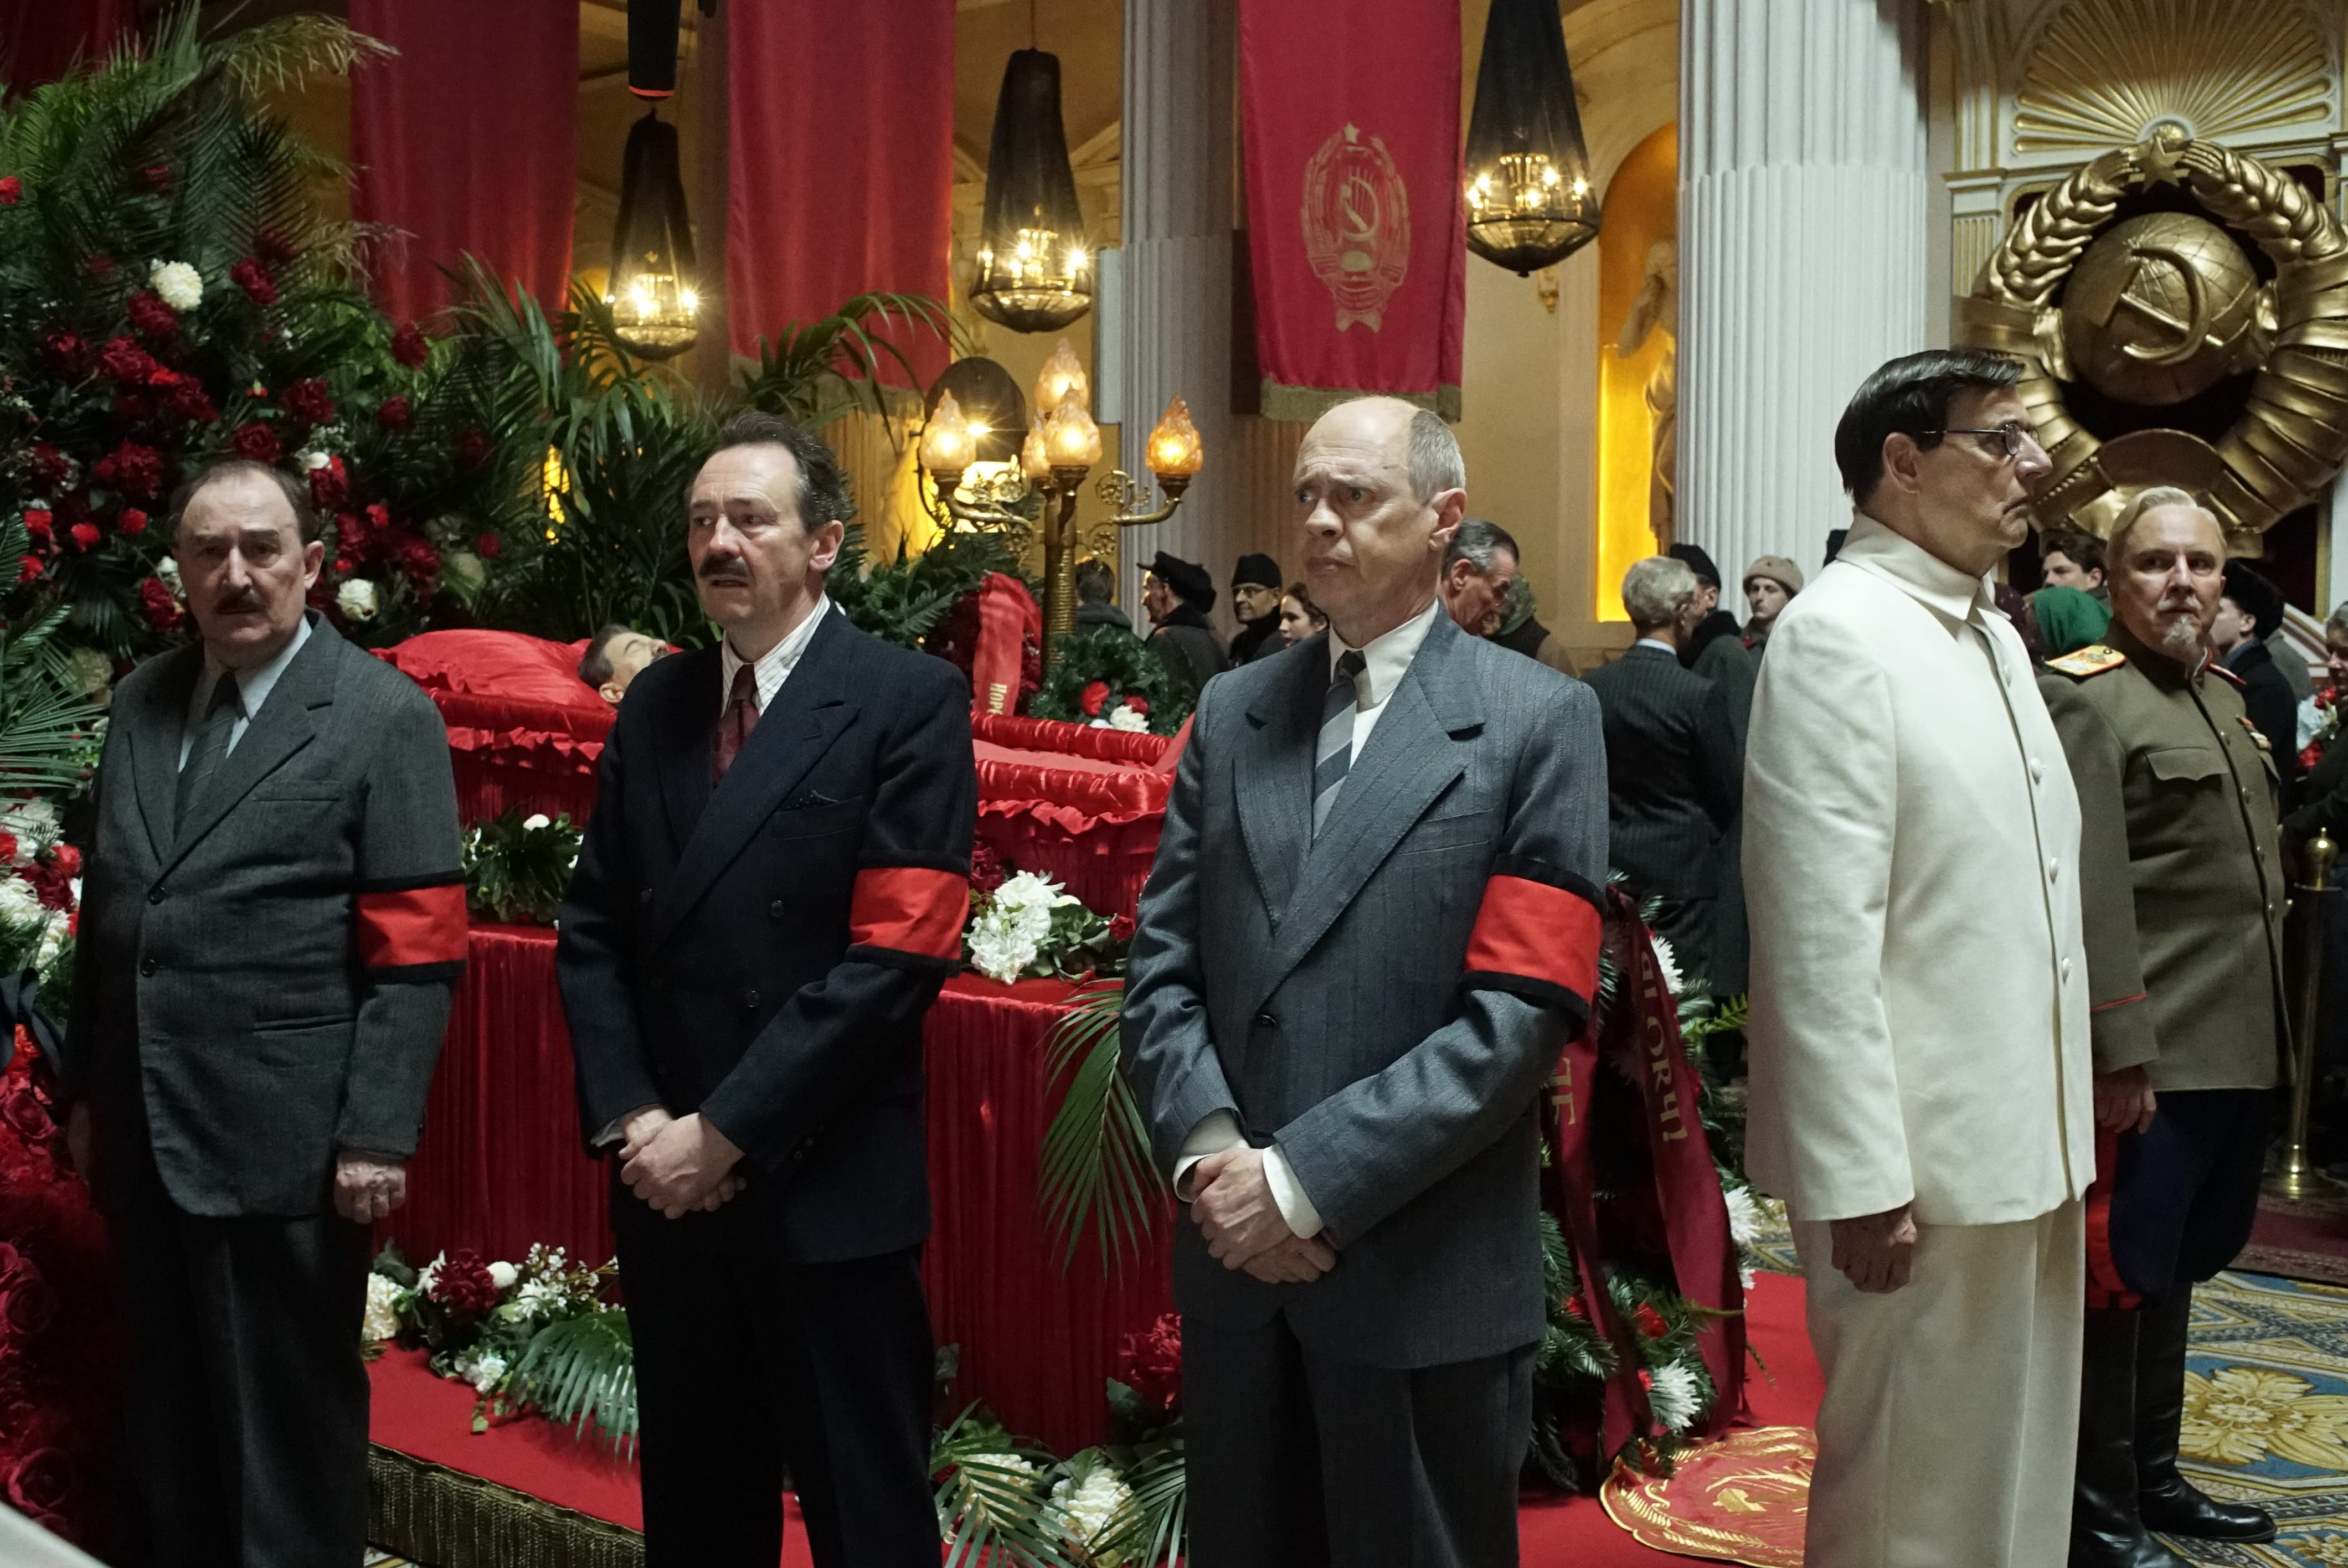 SCREEN REVIEW: 'The Death of Stalin'